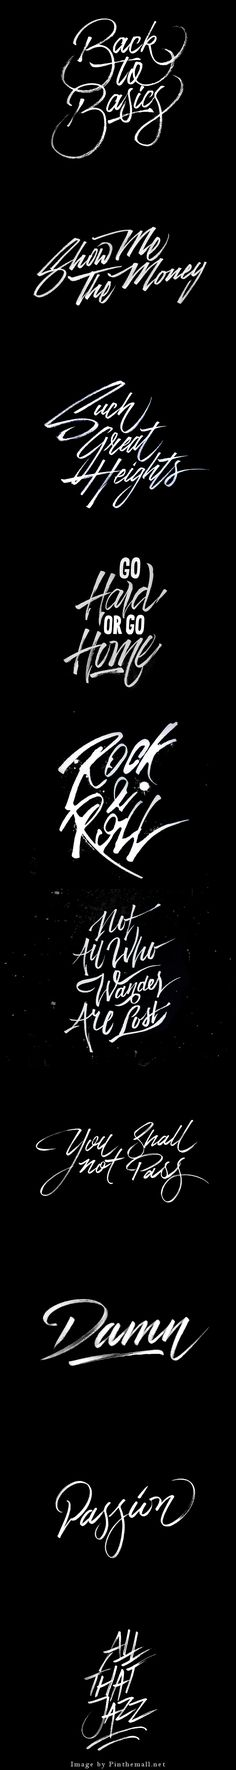 Calligraphy and lettering by Tristan Kromopawiro, Behance